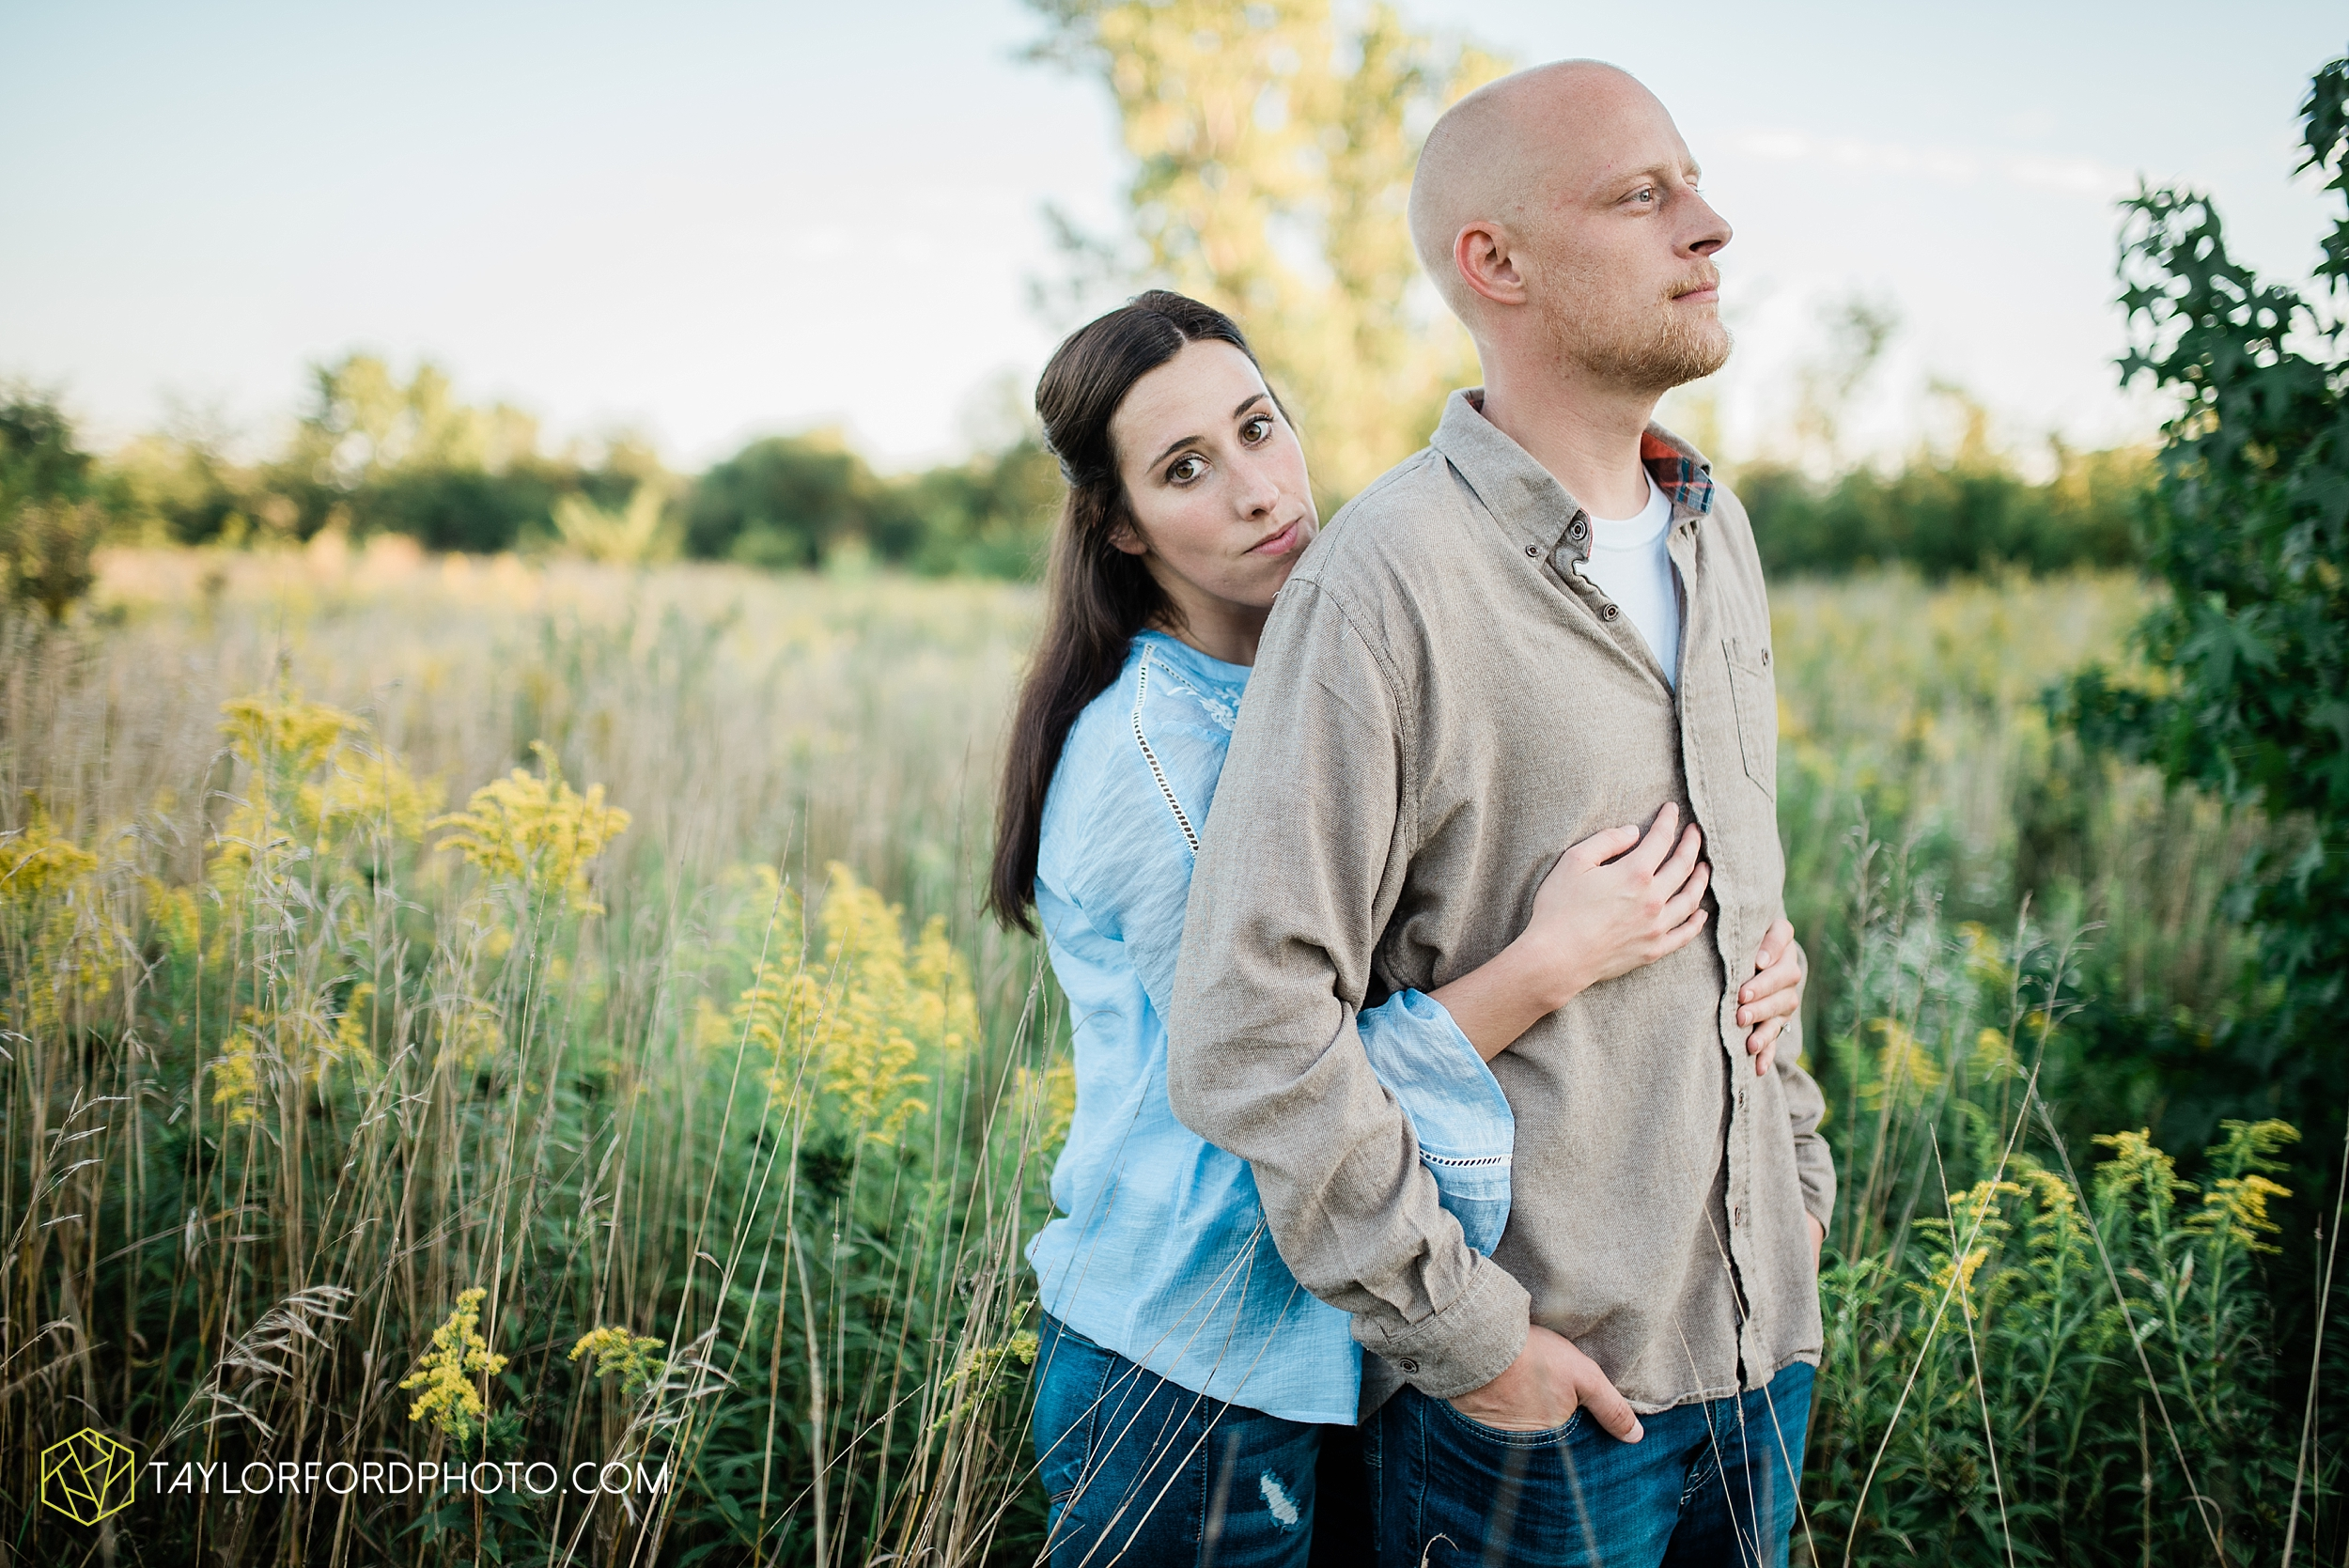 van-wert-ohio-late-summer-engagement-photographer-taylor-ford-photography_0357.jpg